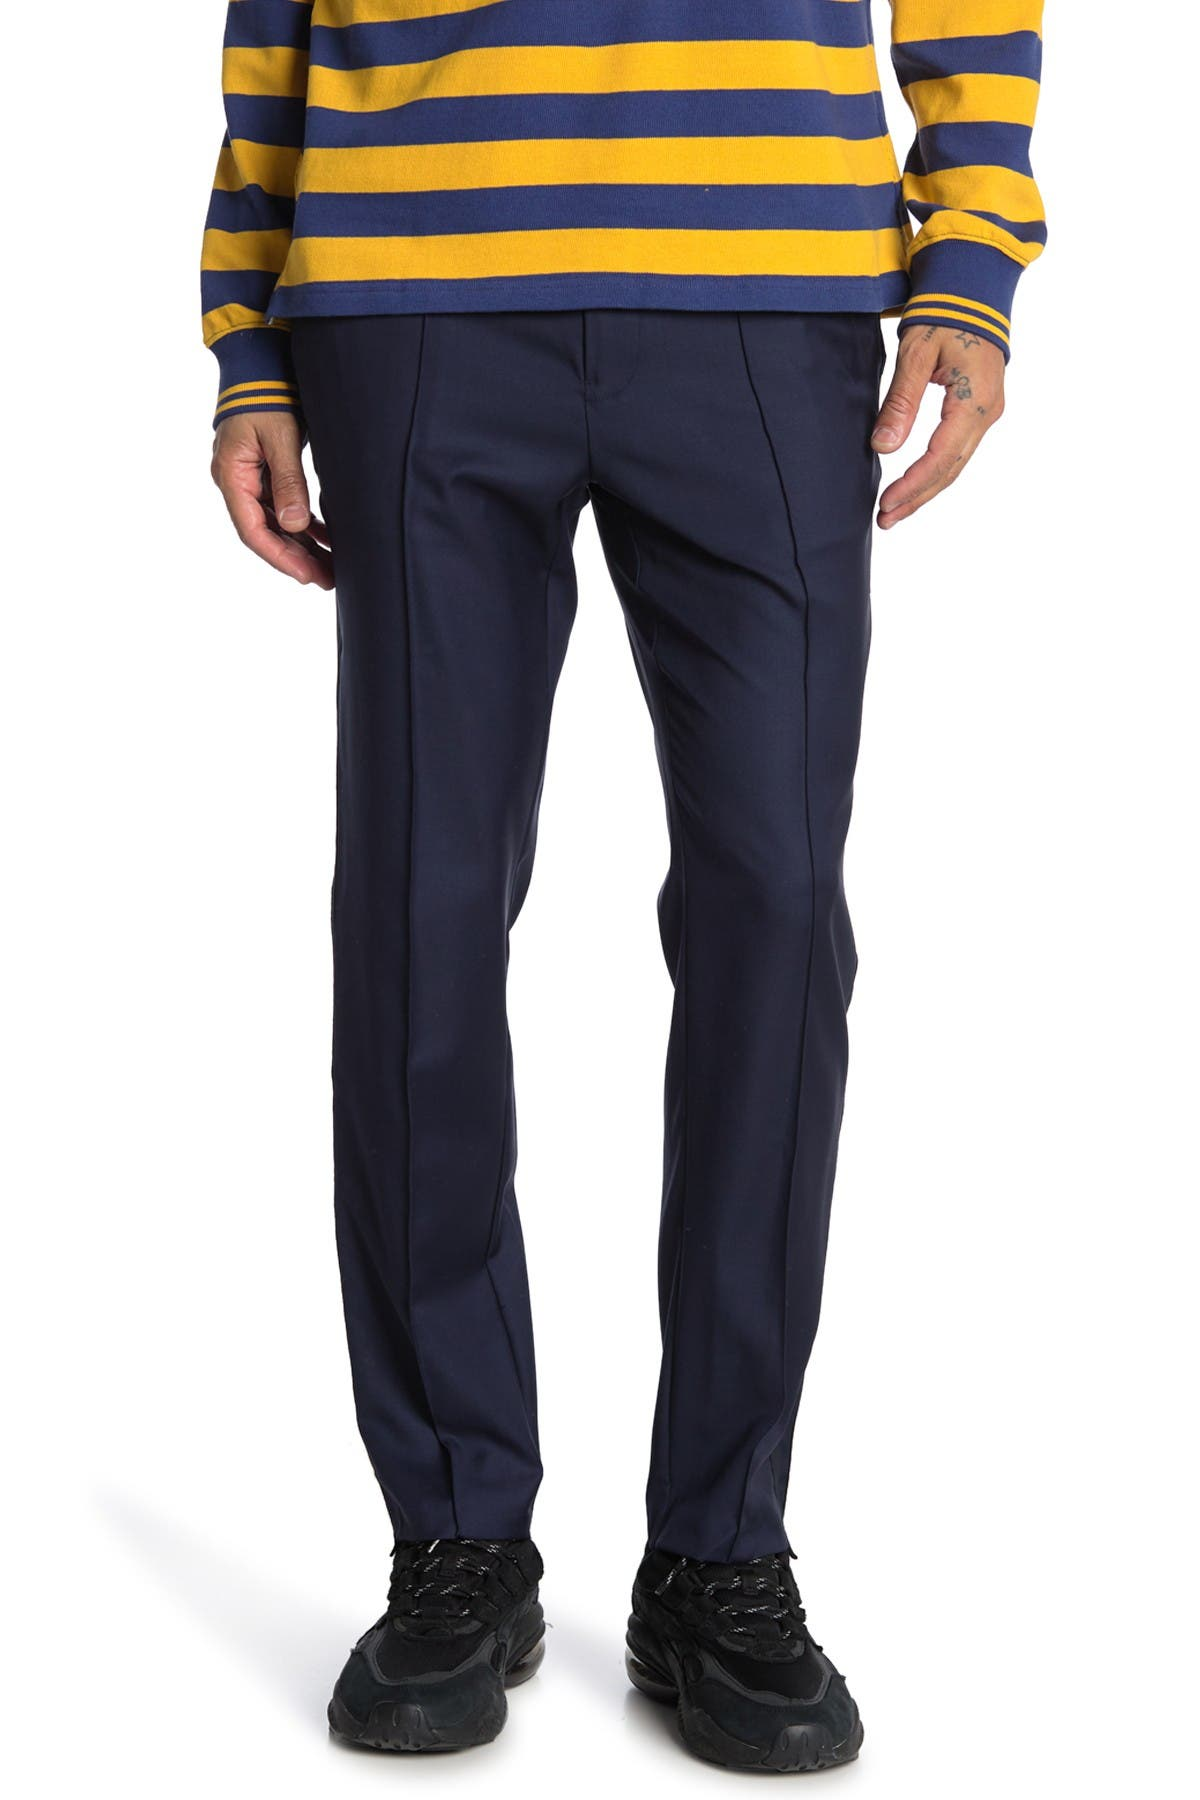 Image of OVADIA AND SONS Sideline Tailored Mid Rise Trousers